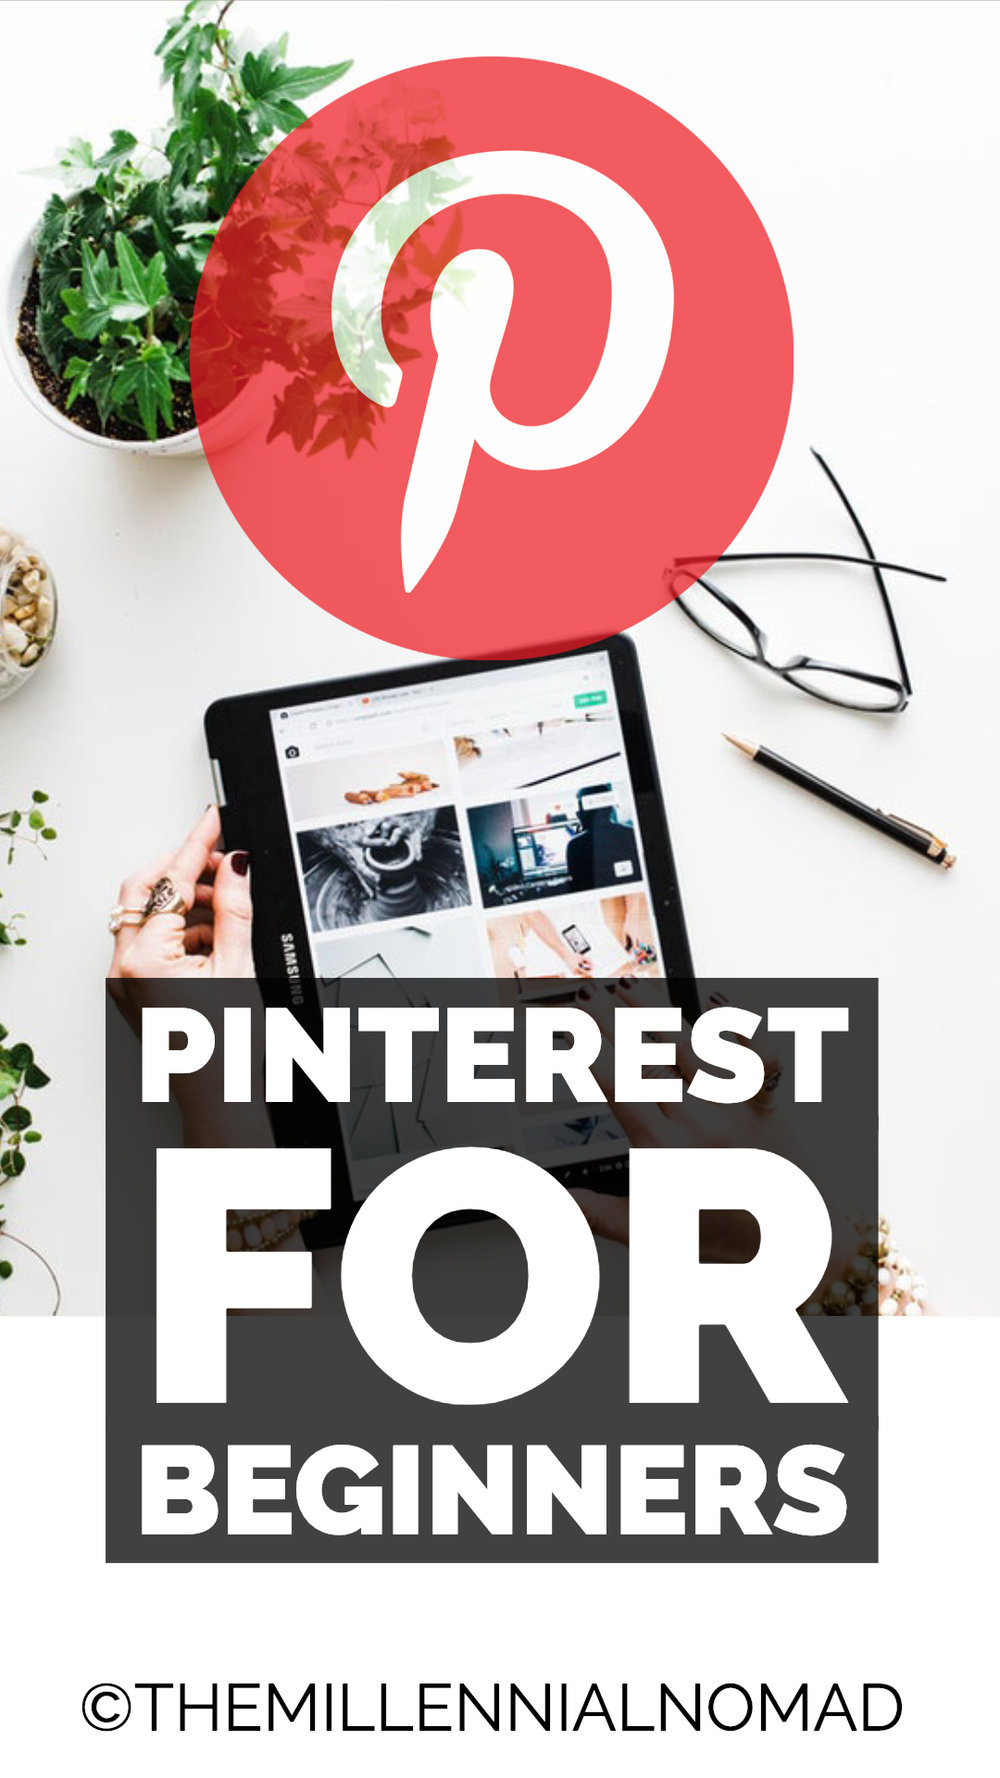 I have been using Pinterest for the past 3 years without knowing how powerful this social platform could be. I just used it to save ideas or inspirational travel posts for my next travel destinations. Other than that, I just knew this was mostly used by women to share their DIY or recipe ideas.   So cliche right?  Well, it is only after following a training from Sam Hendricks focused on  Advanced Pinterest marketing in the mastermind community I belong to, that I started realising how great this platform is for business and what I have been missing out this whole time!  You see Online Marketers will encourage you to use advertising to get results quickly. But unless you have a brand authority with a strong online presence, or a very good sales funnel to generate leads, you will just waste your money.  Now on the contrary, if you want to generate traffic to your website in the long run, build a strong brand authority and be seen as an expert in your field, then Pinterest is the answer and I will tell you why.